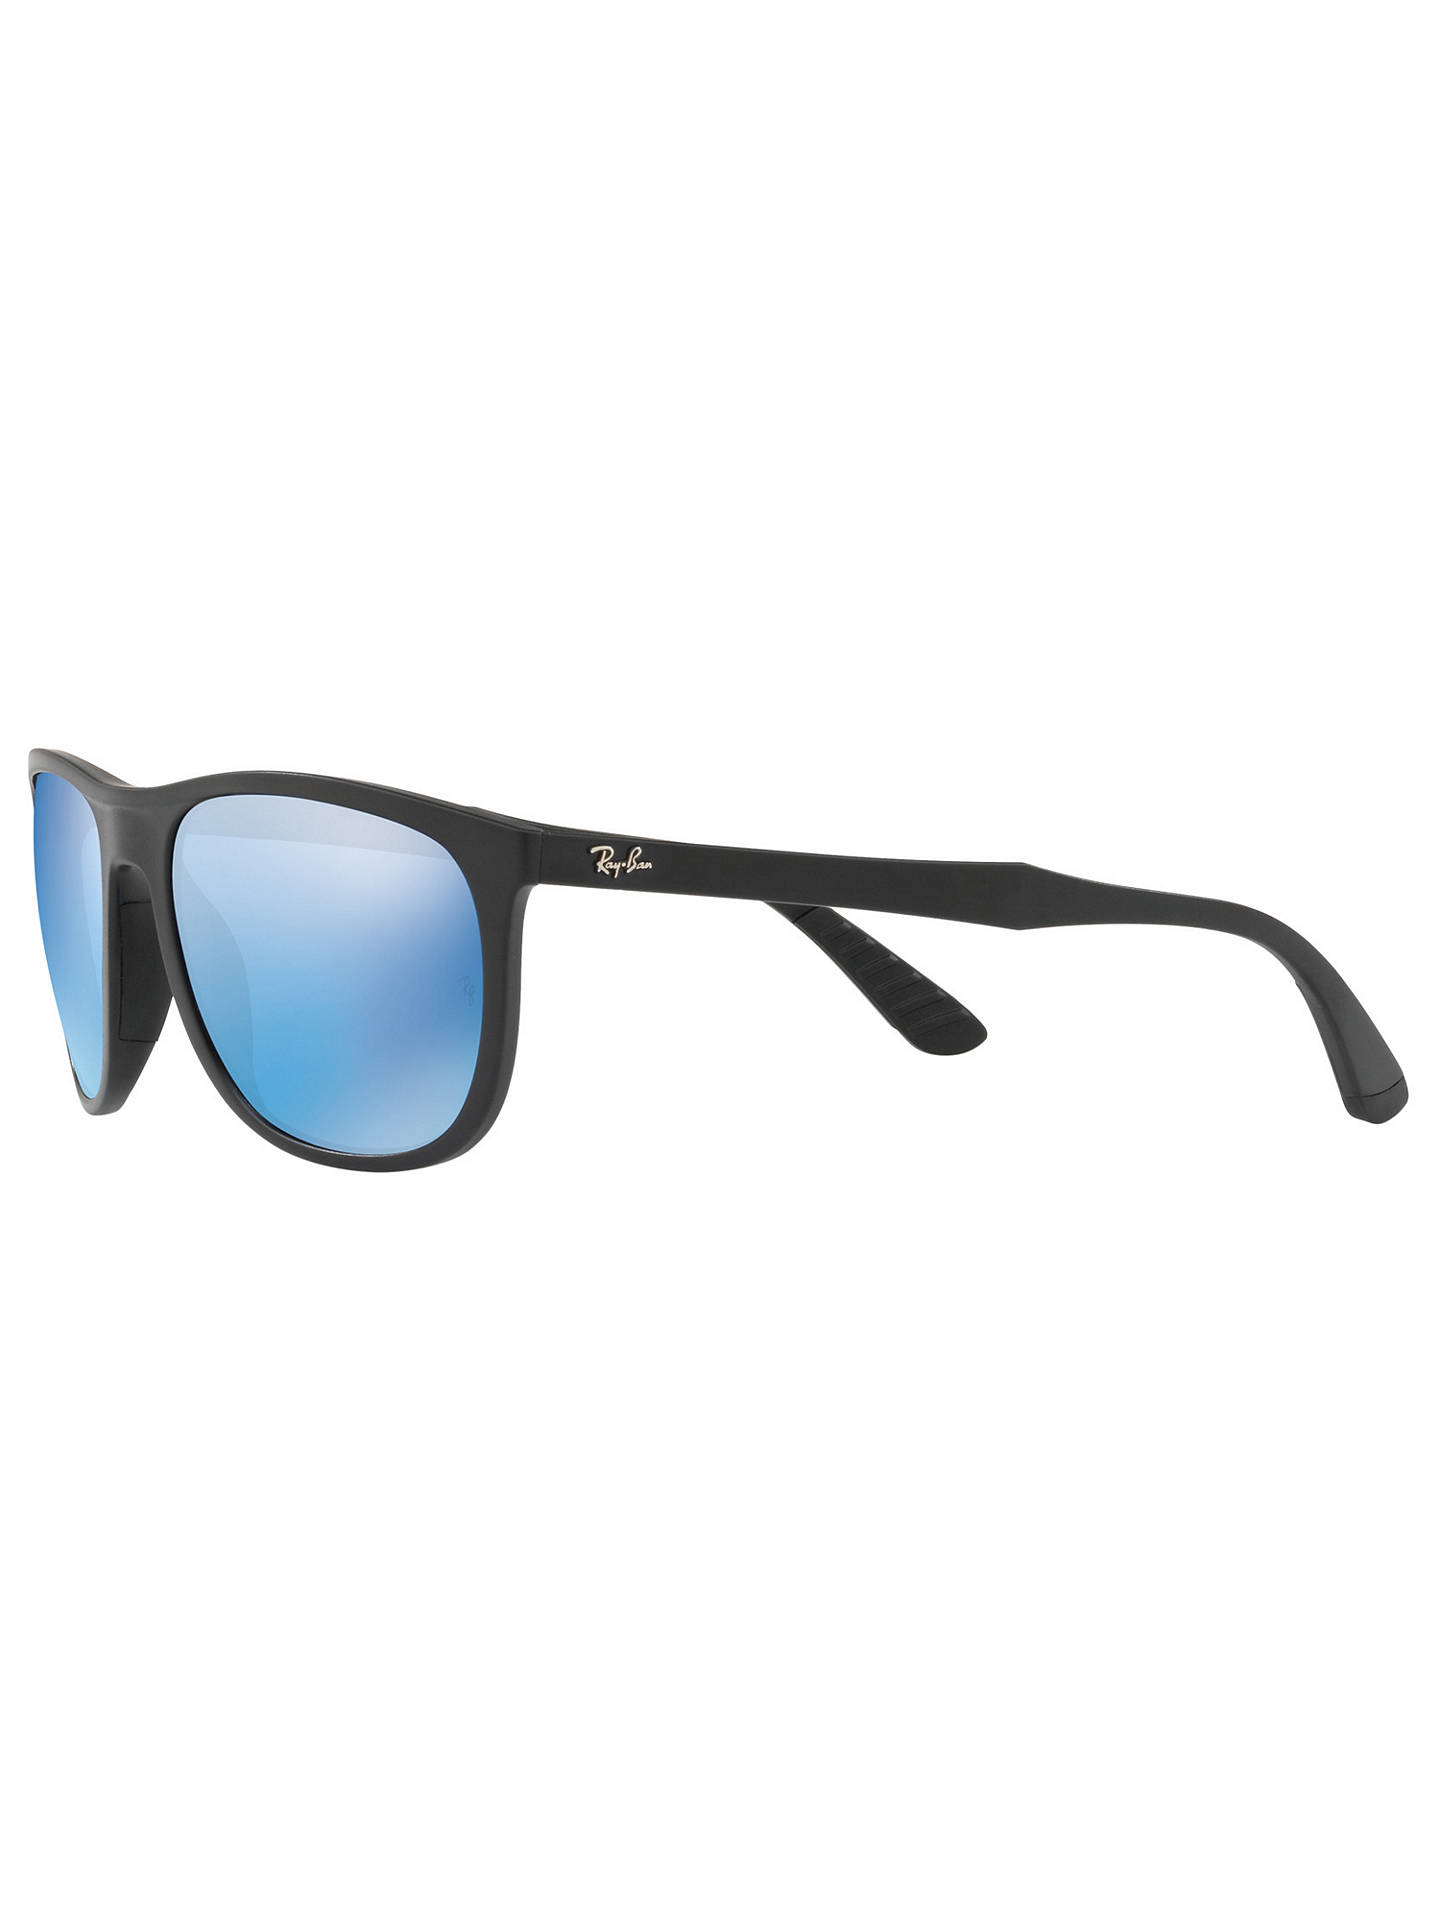 9a4338dba4 Ray-Ban RB4291 Square Sunglasses at John Lewis   Partners